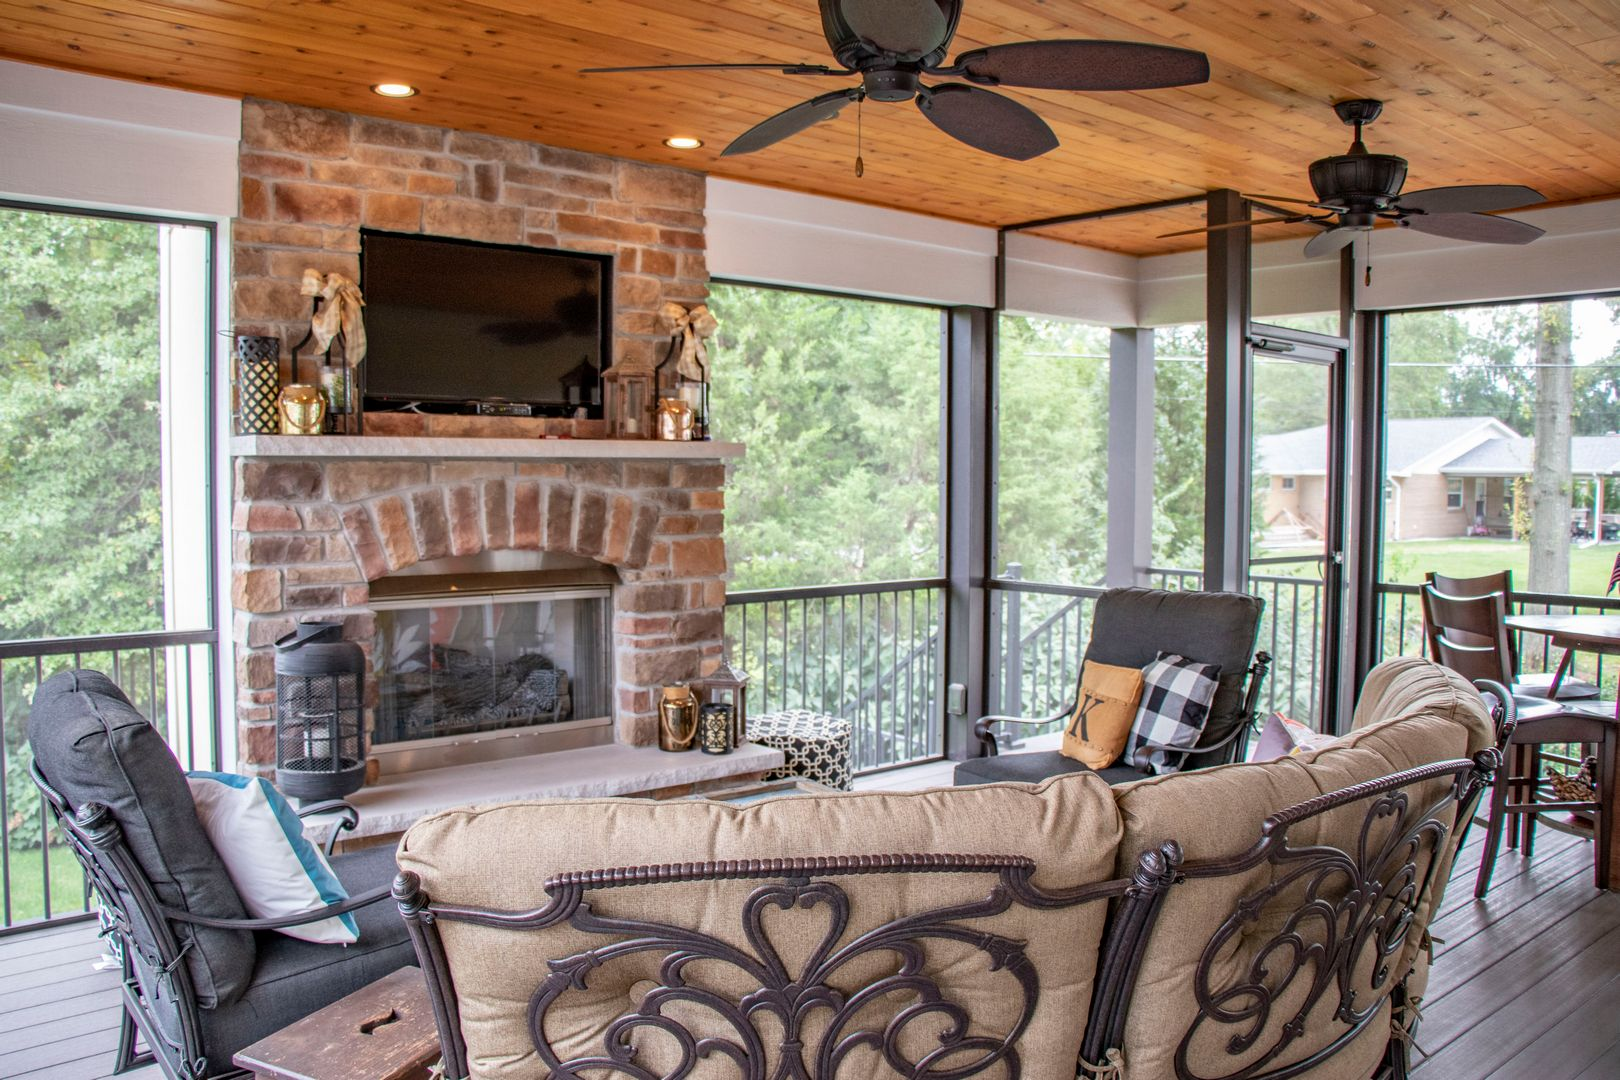 snuggle up next to loved ones next to this fireplace